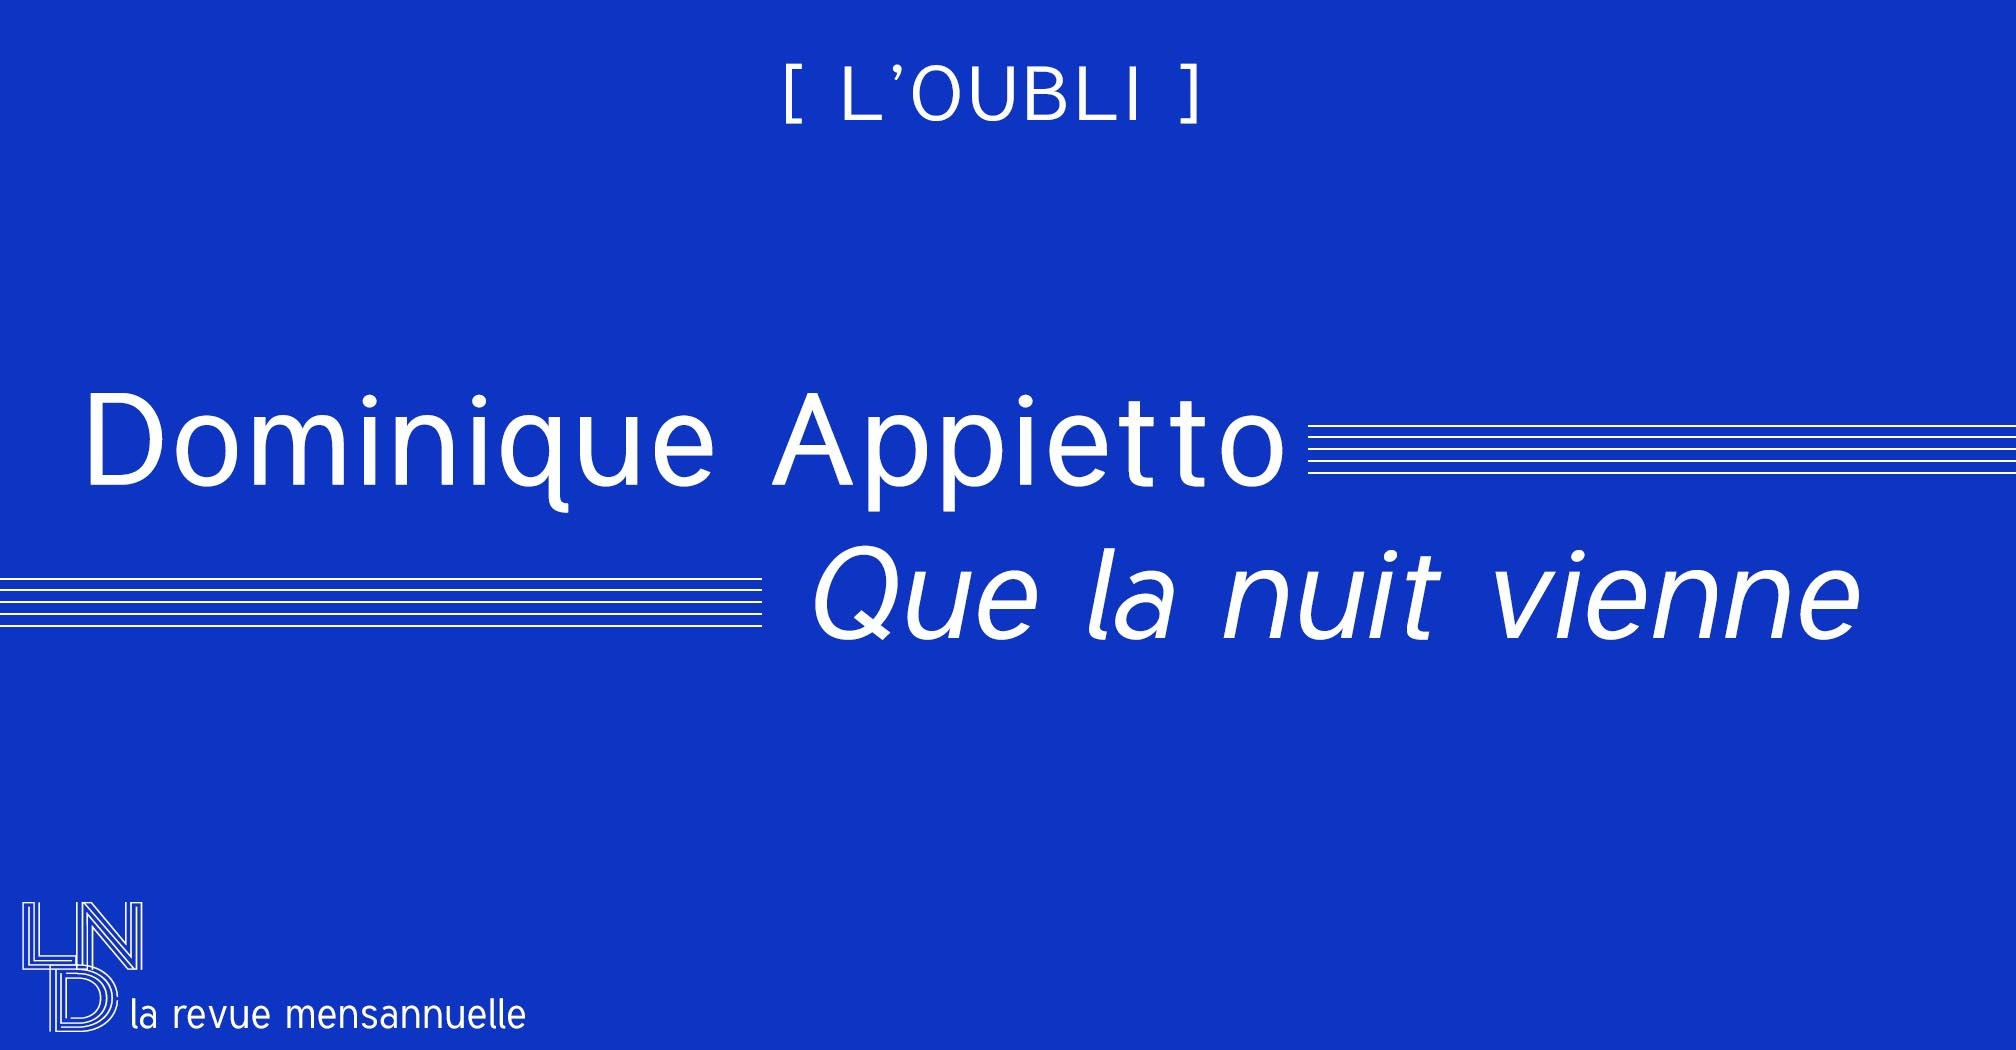 Dominique Appietto - Que la nuit vienne